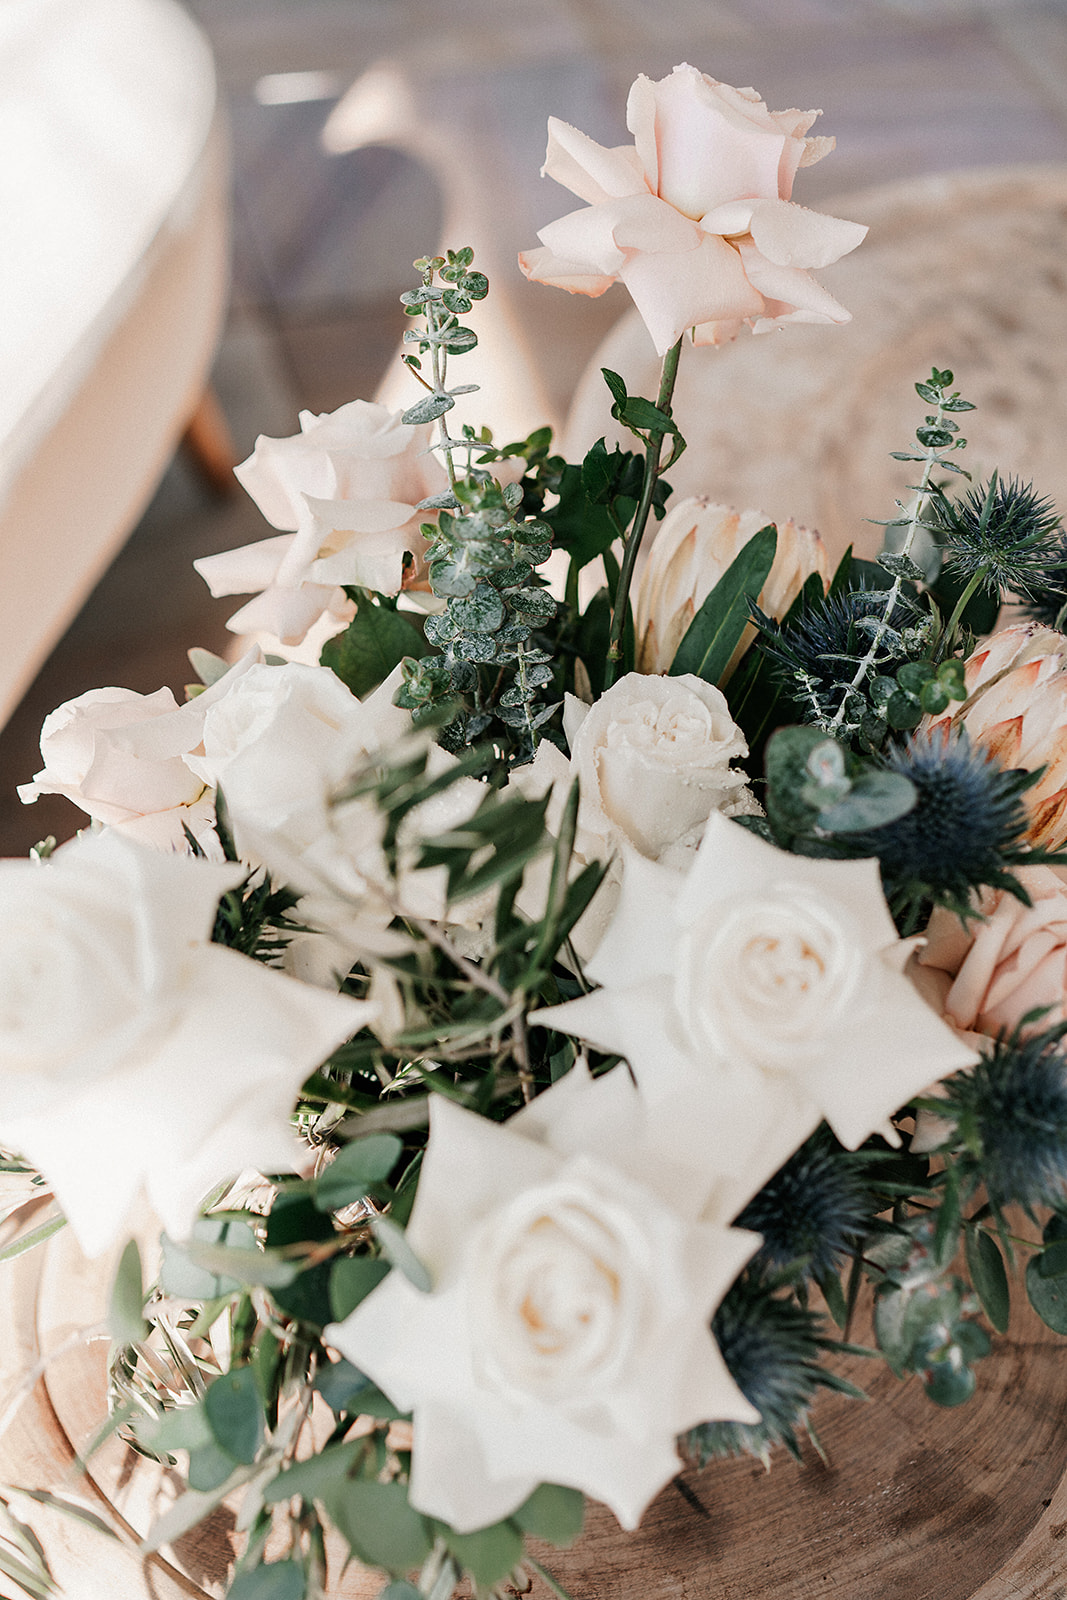 Maleny Manor Hinterland Wedding with Native Flowers and Rustic Foliage